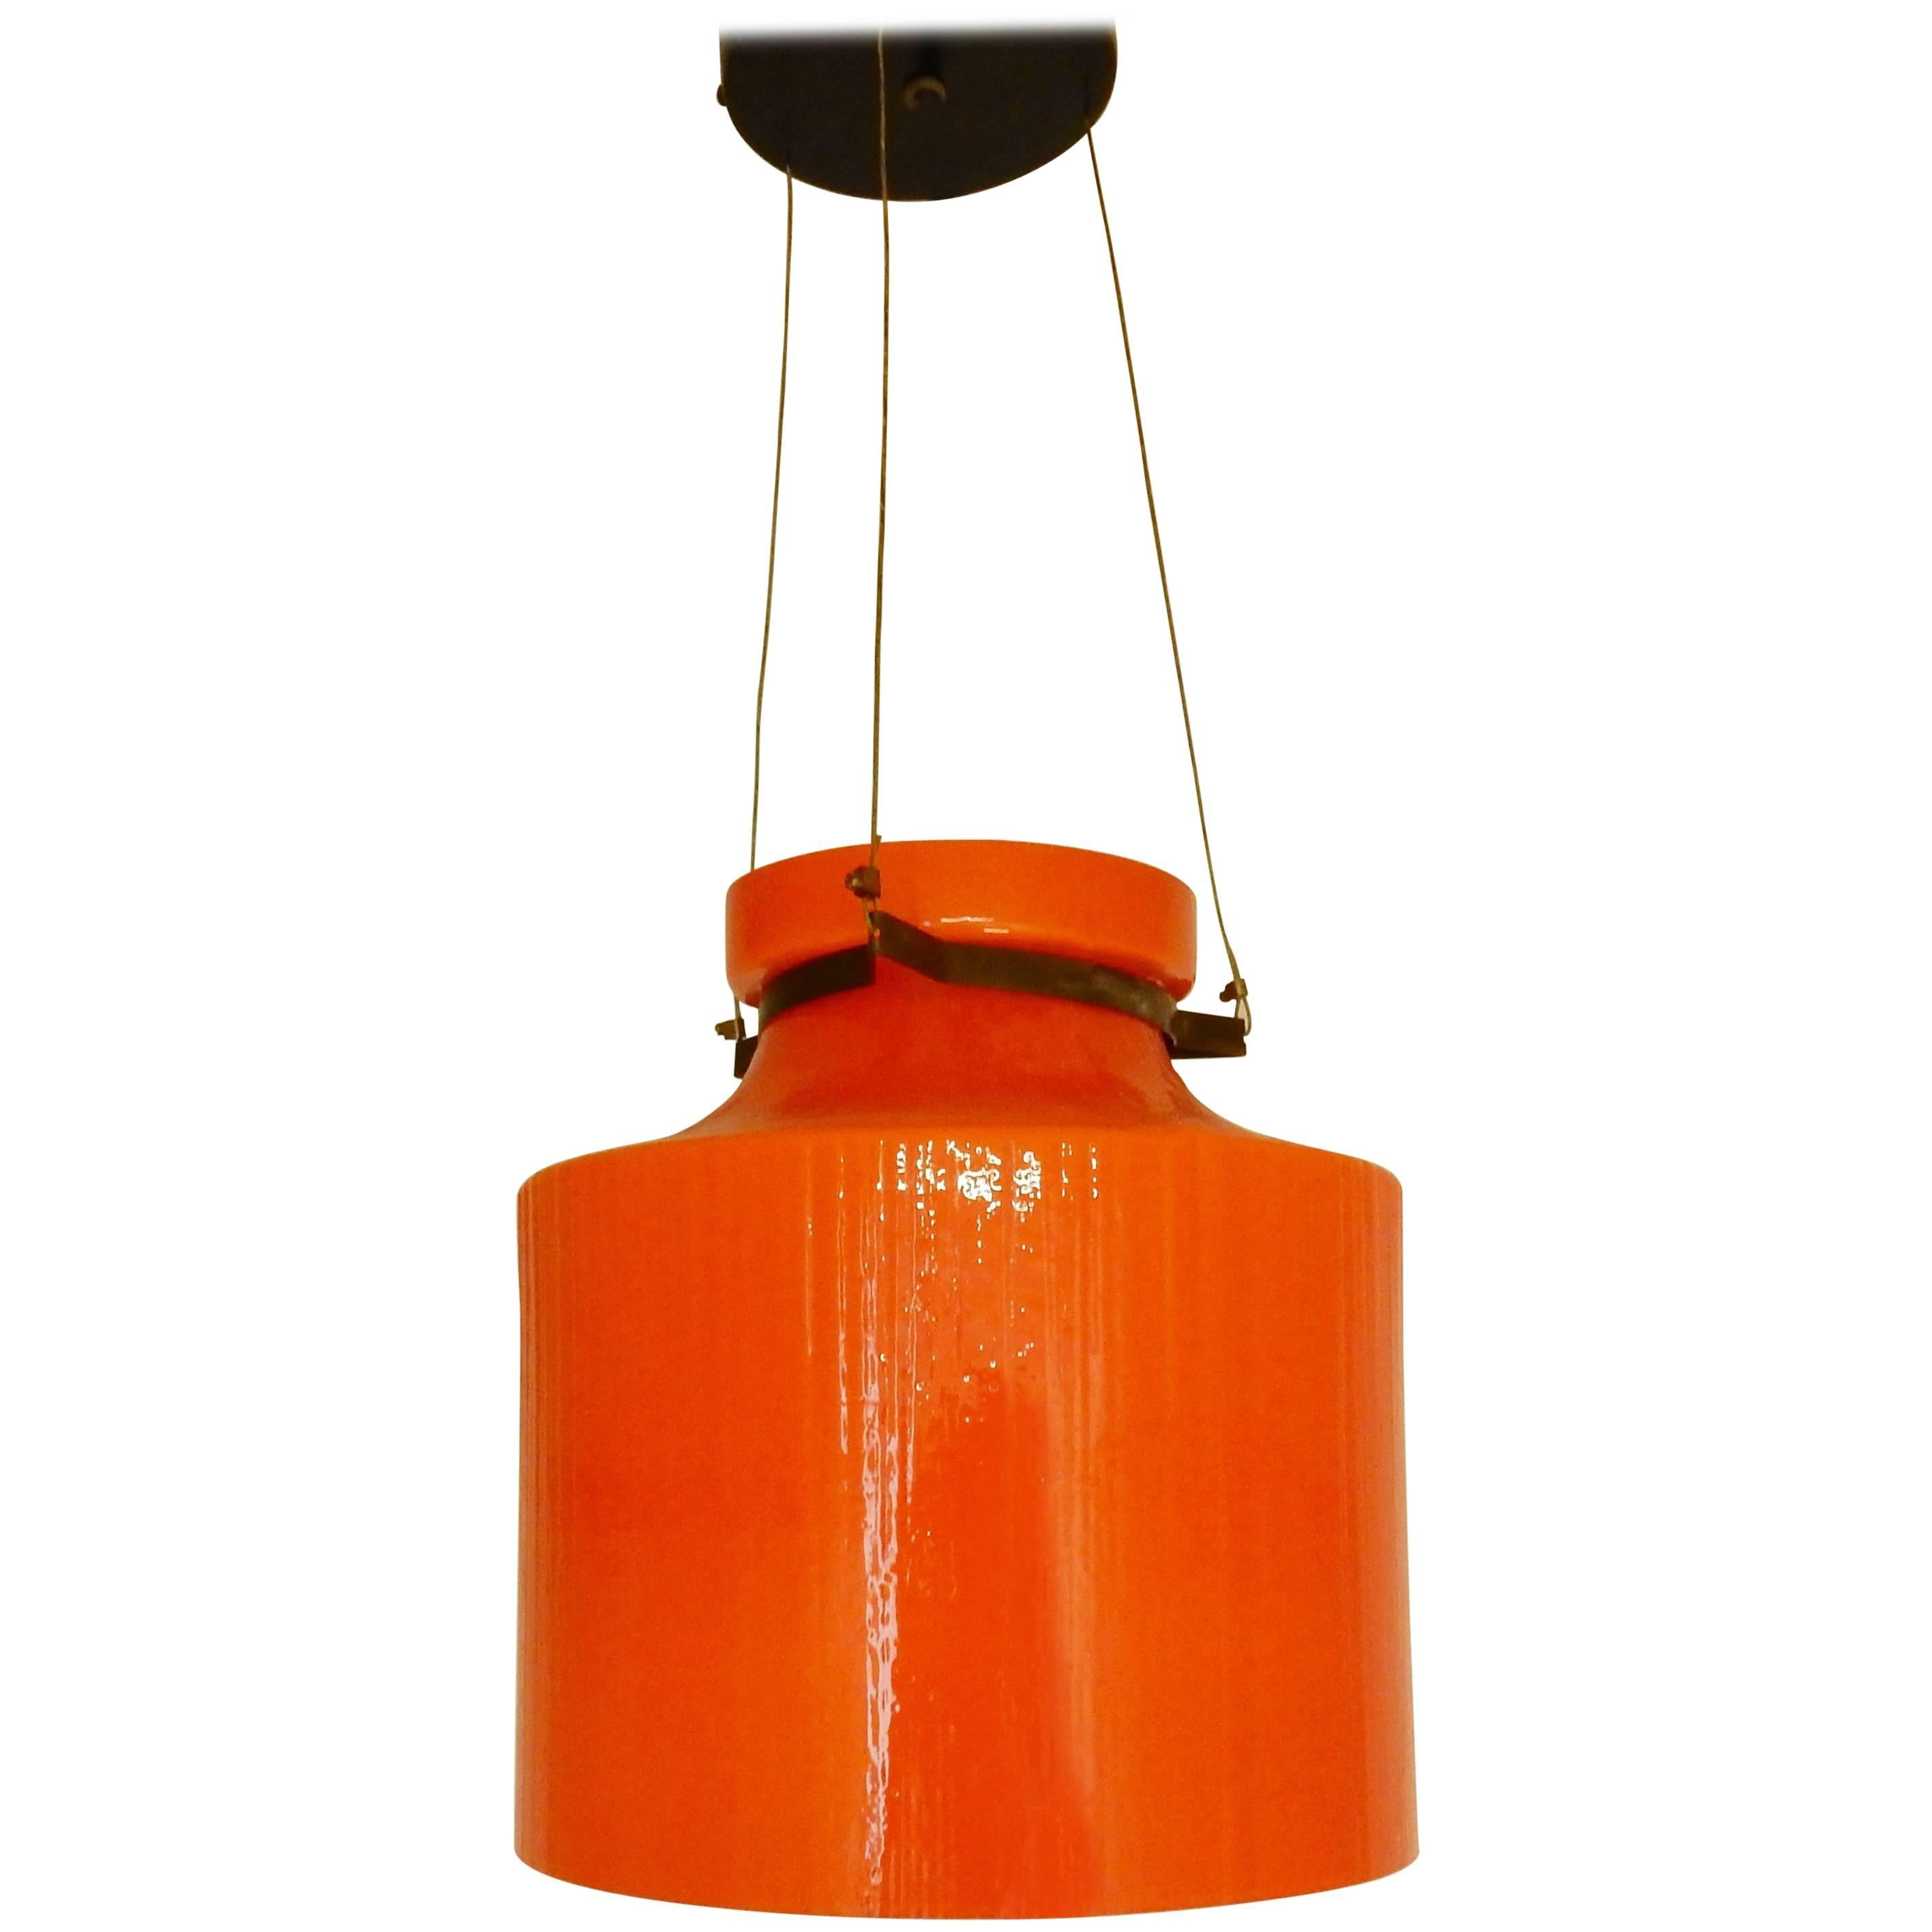 Ripple Structure Glass Pendant Light from Indoor, Netherlands, Early 1970s